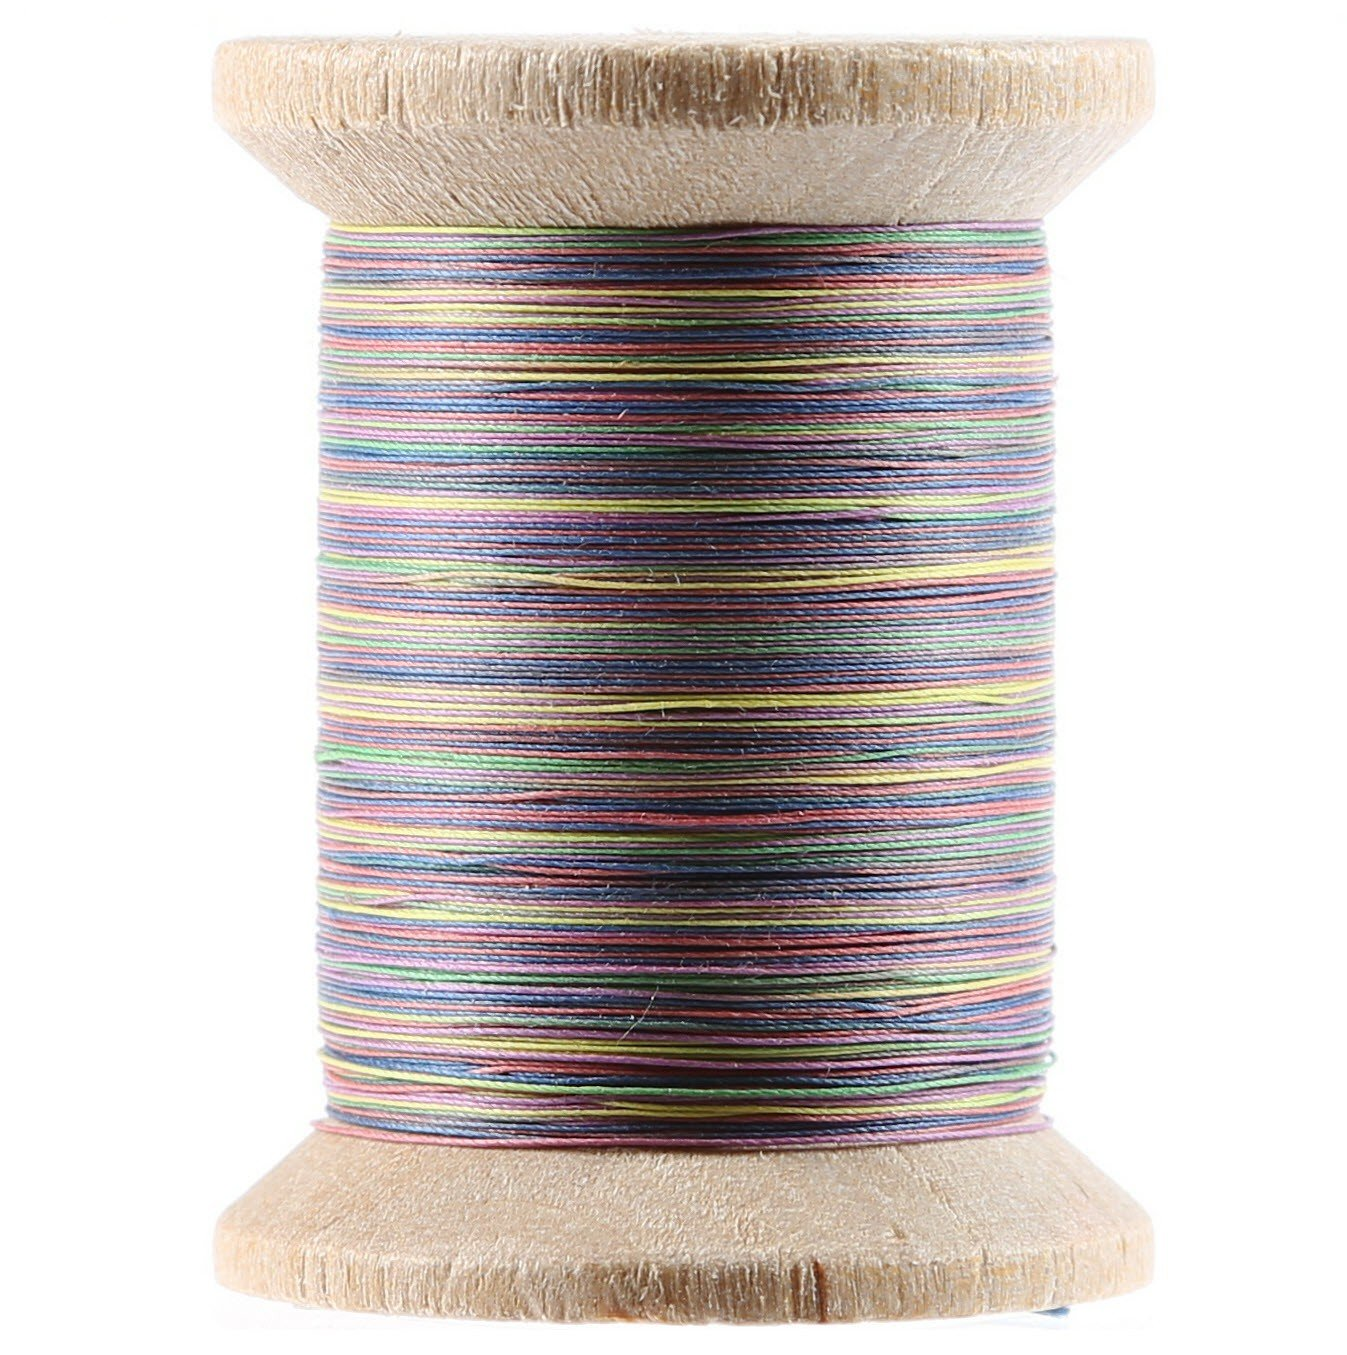 Variegated Cotton Hand Quilting Thread 400yds Primaries